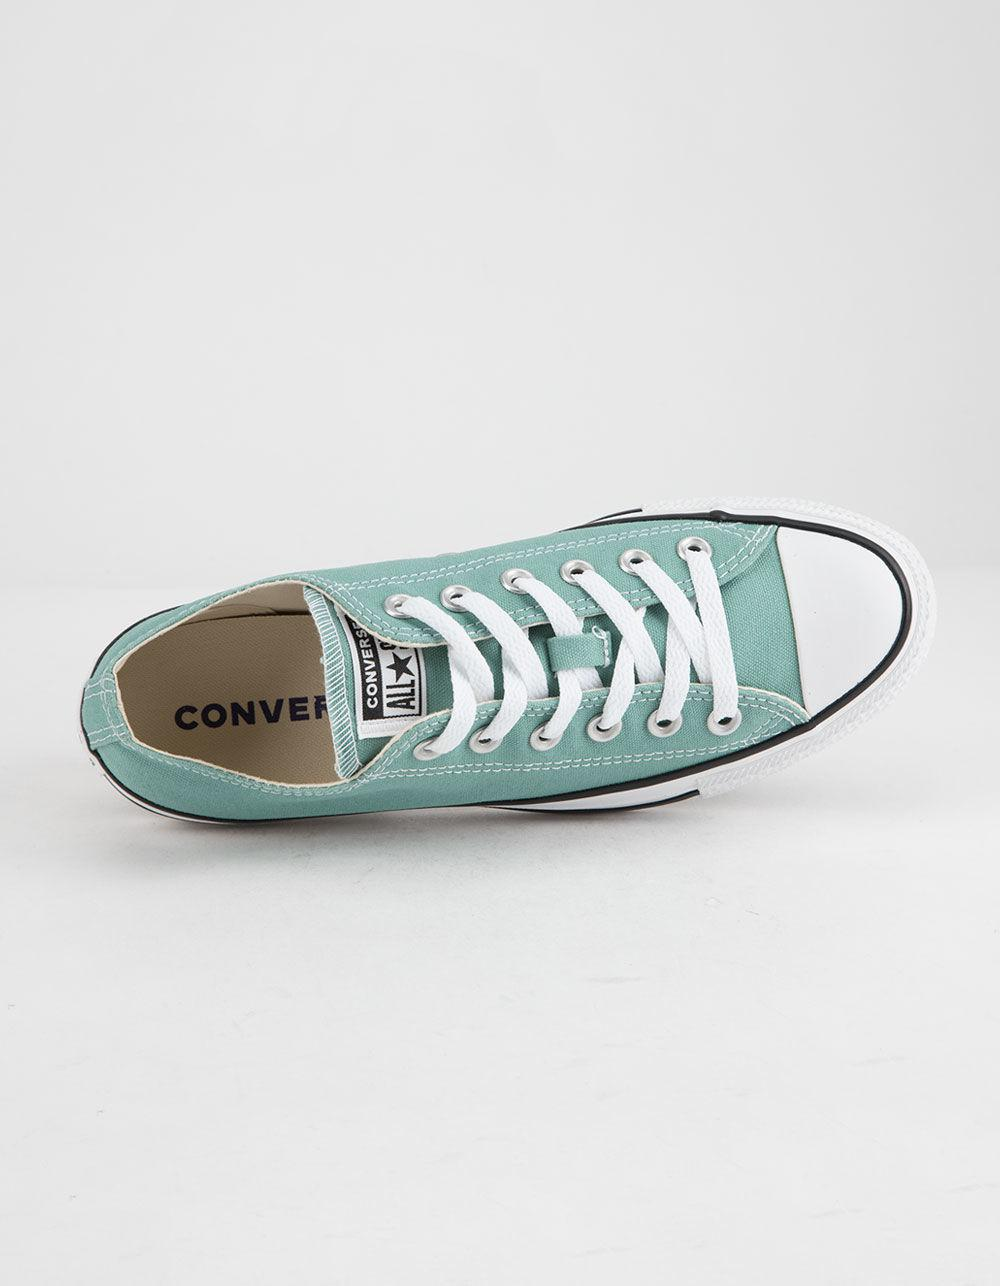 5afb97259e1 Converse - Blue Chuck Taylor All Star Mineral Teal Low Top Womens Shoes -  Lyst. View fullscreen